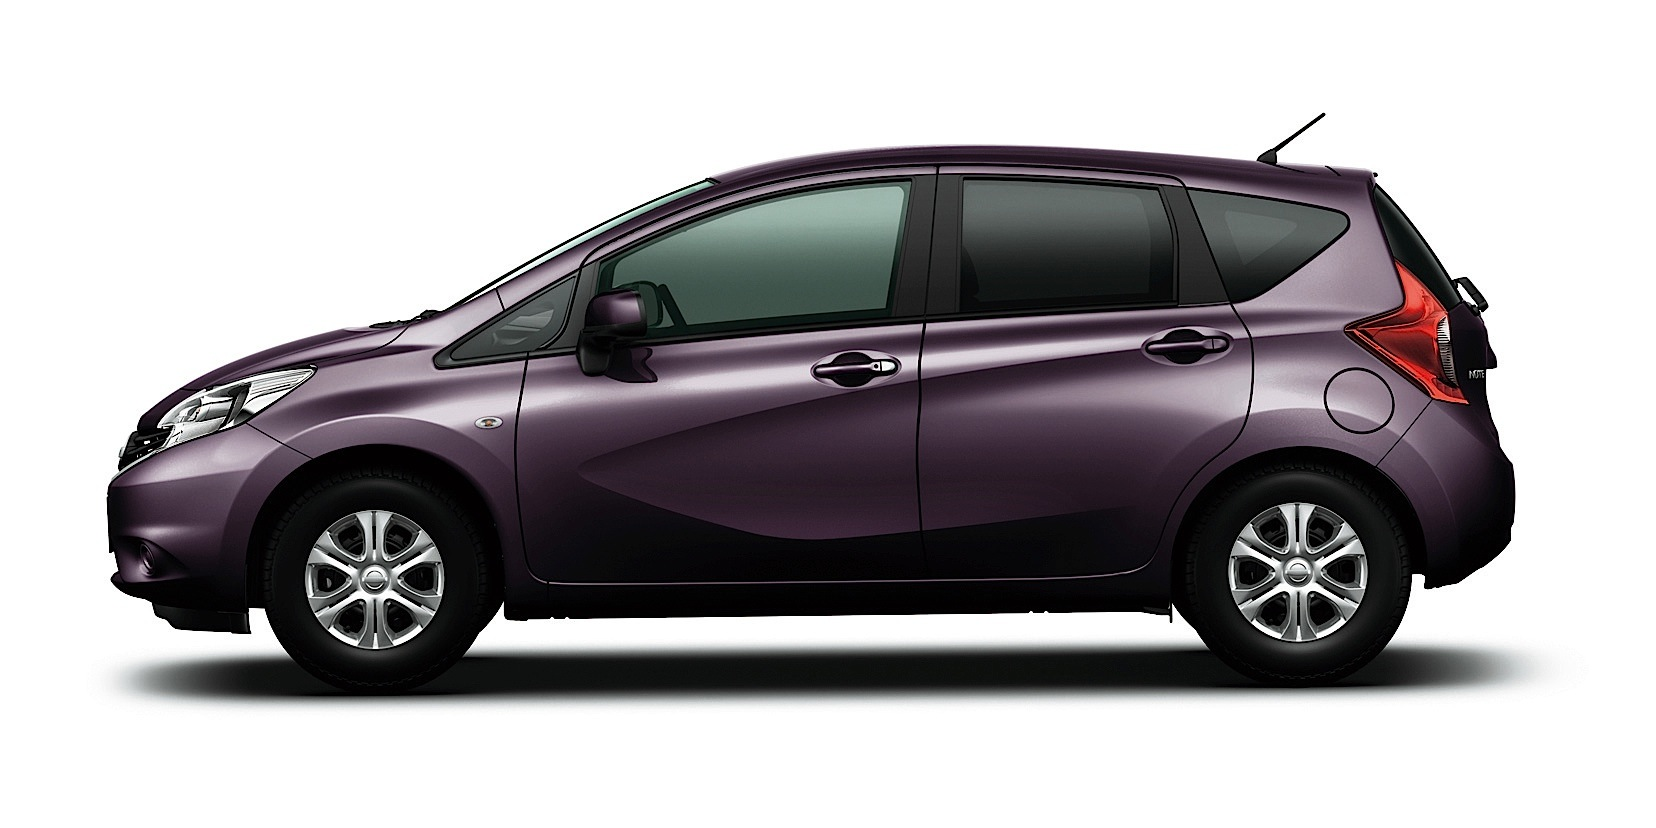 nissan note specs photos 2013 2014 2015 2016 2017 autoevolution. Black Bedroom Furniture Sets. Home Design Ideas